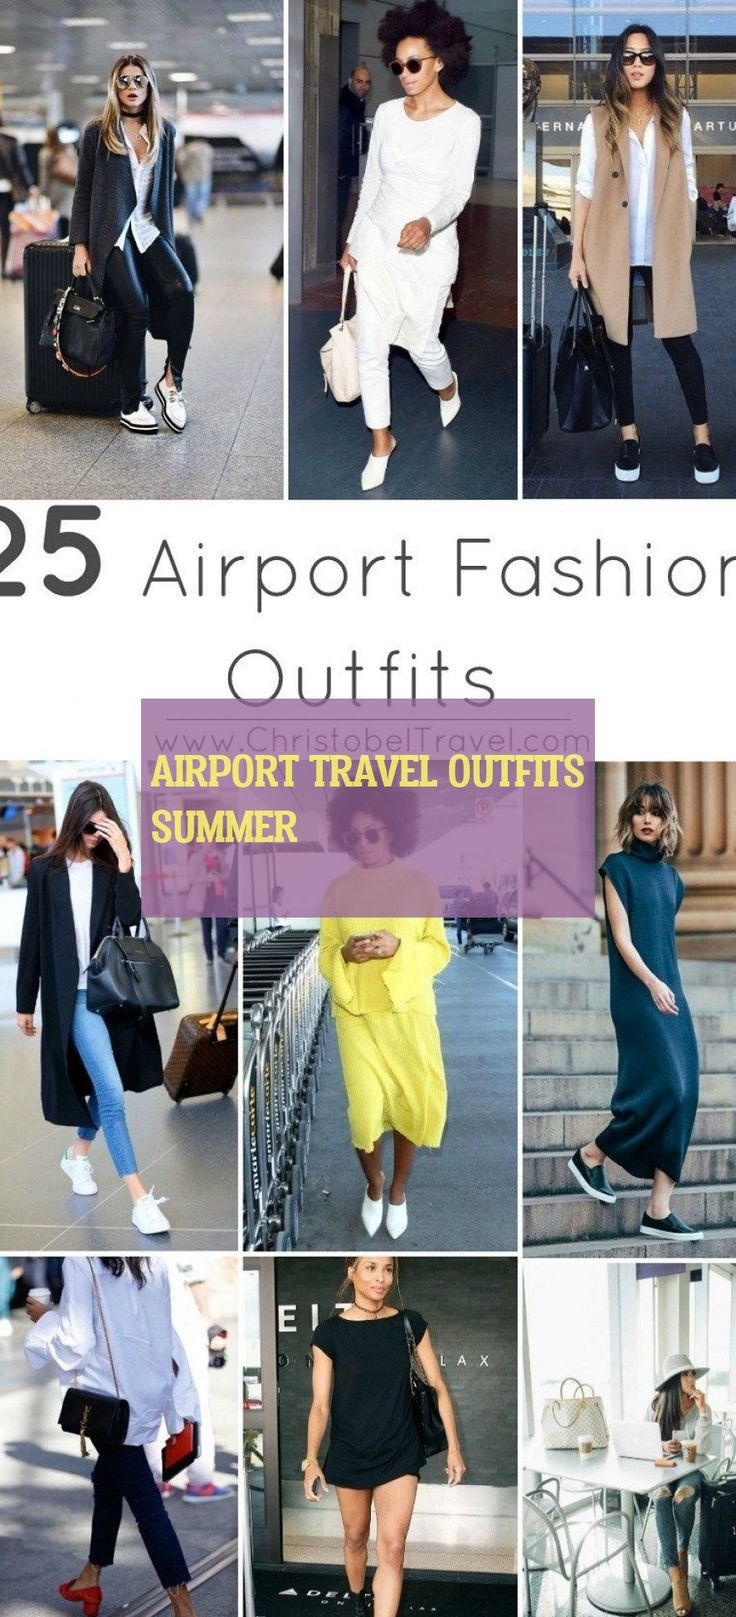 35 Best Ideas for travel outfit airport style rosie huntington whiteley - #airpo...